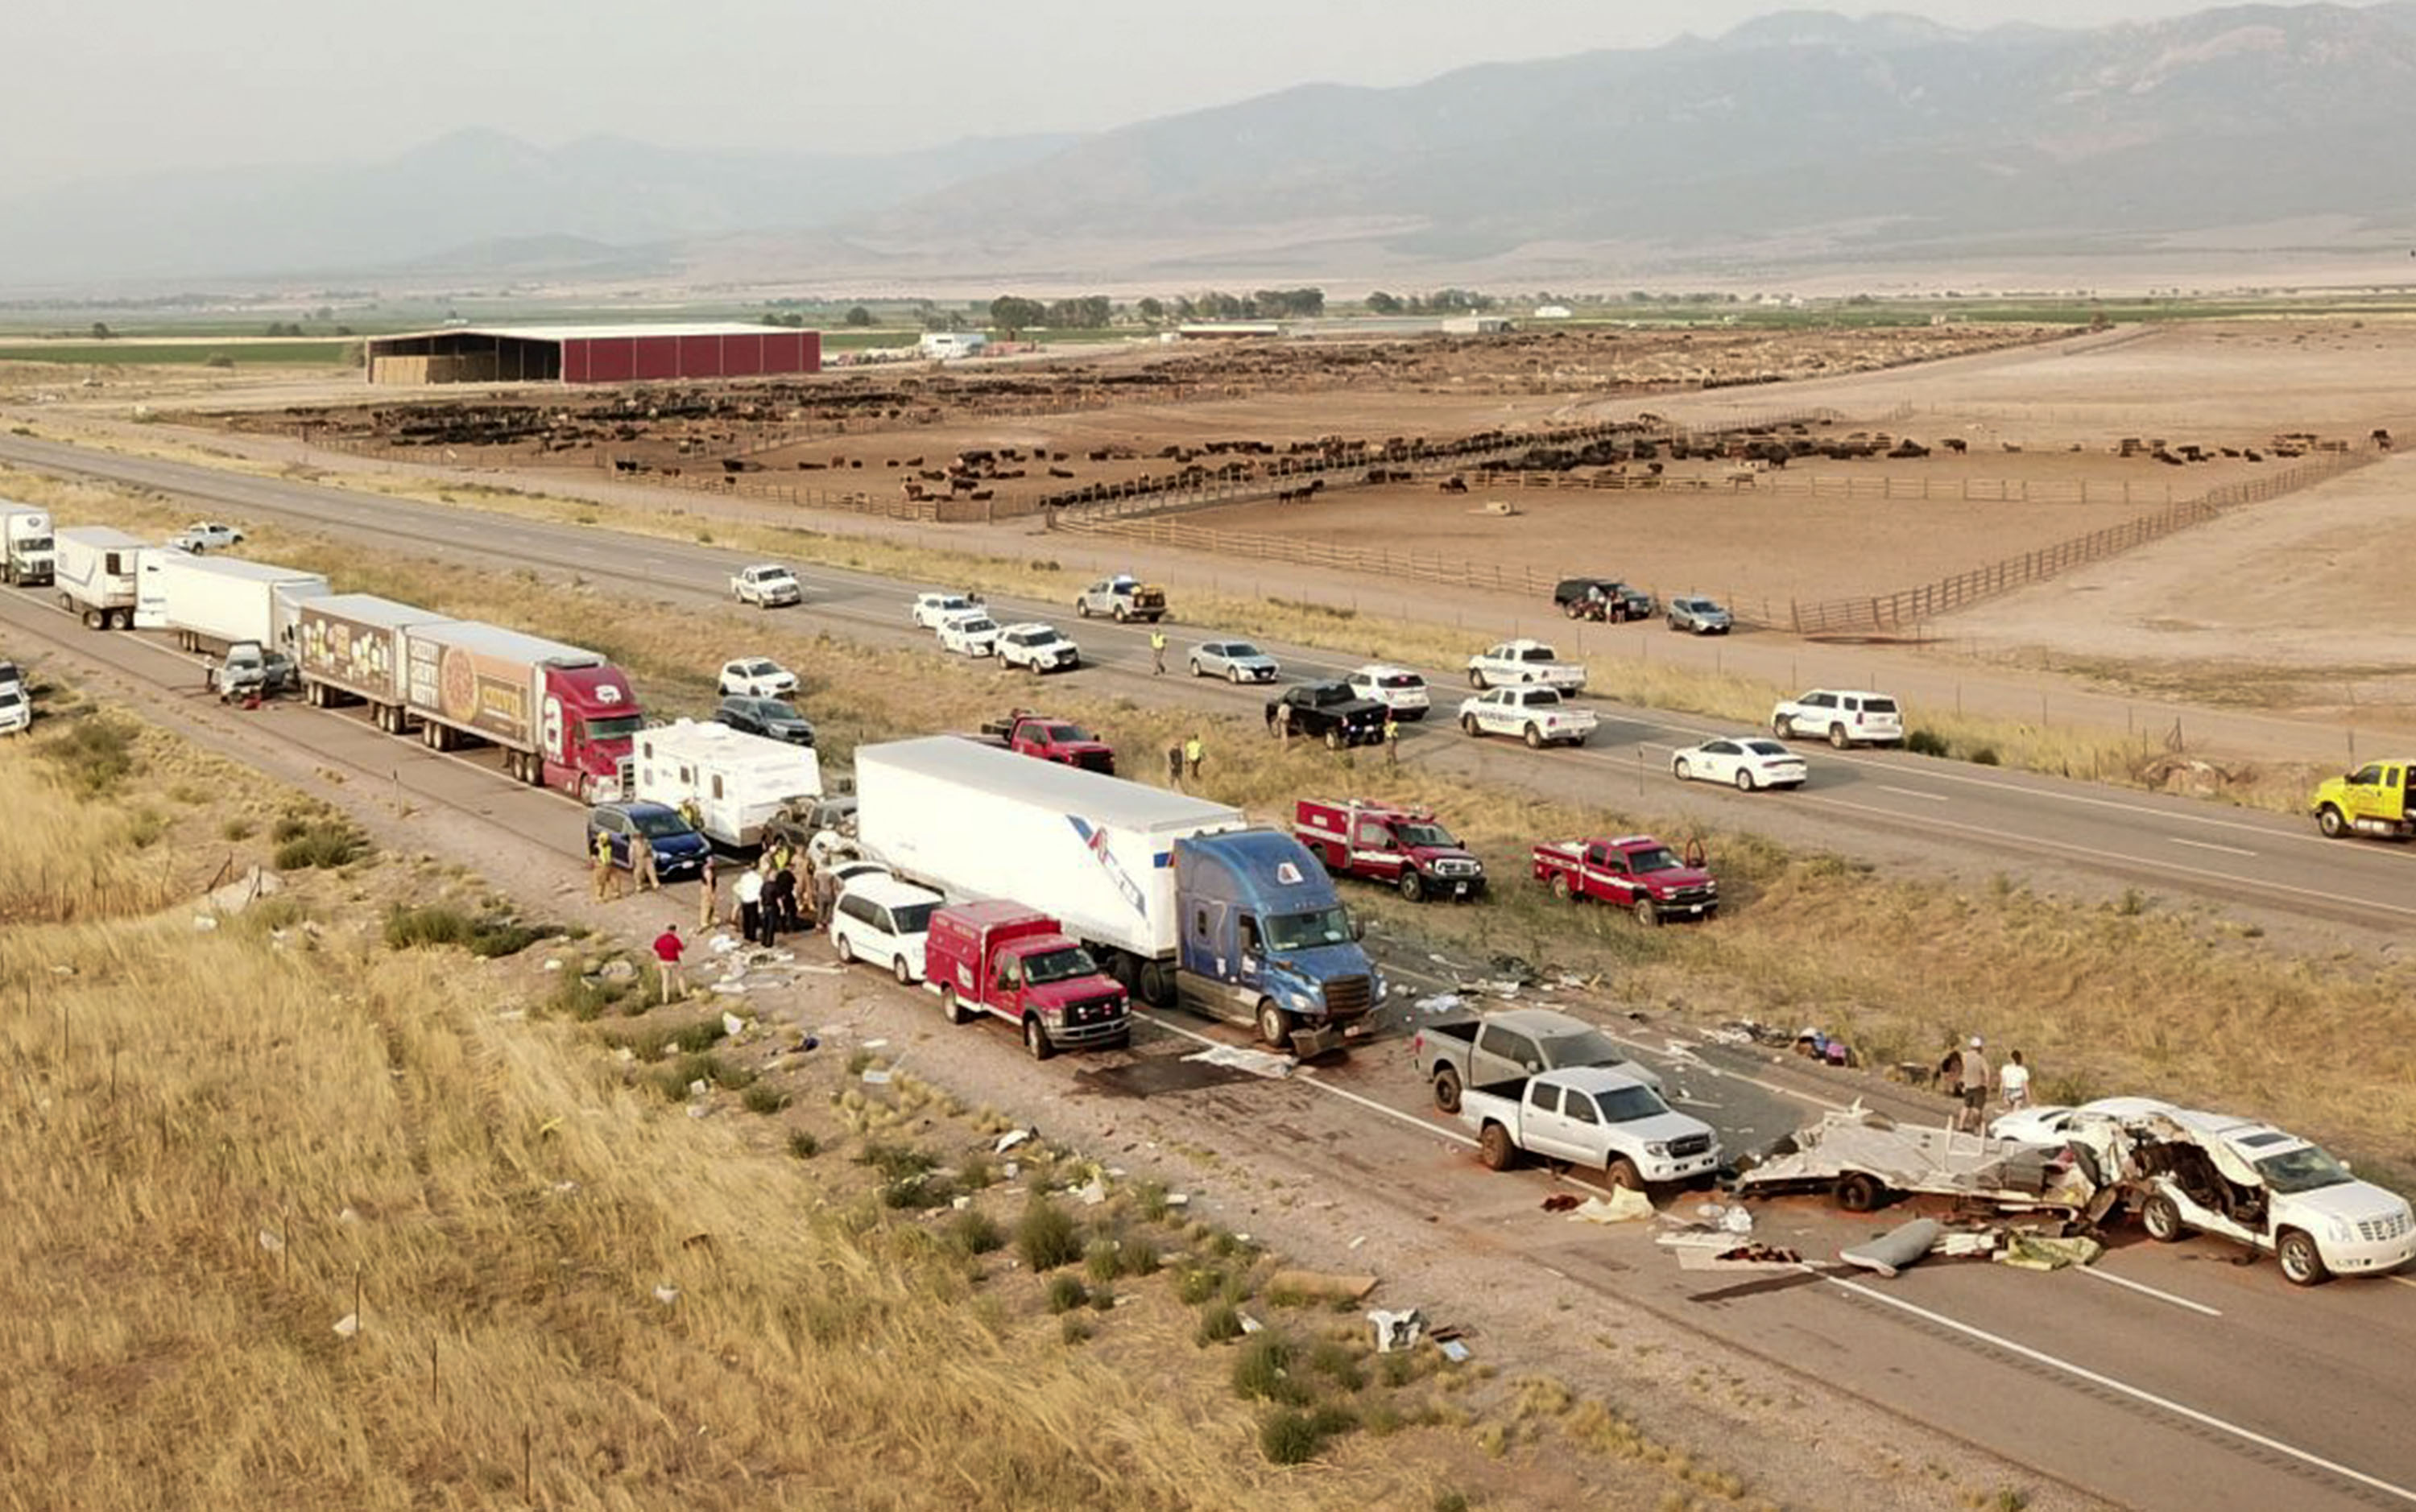 This photo provided by the Utah Highway Patrol shows the scene on Interstate 15 near Kanosh on Sunday after a dust storm led to multiple crashes involving 22 vehicles that killed eight people.